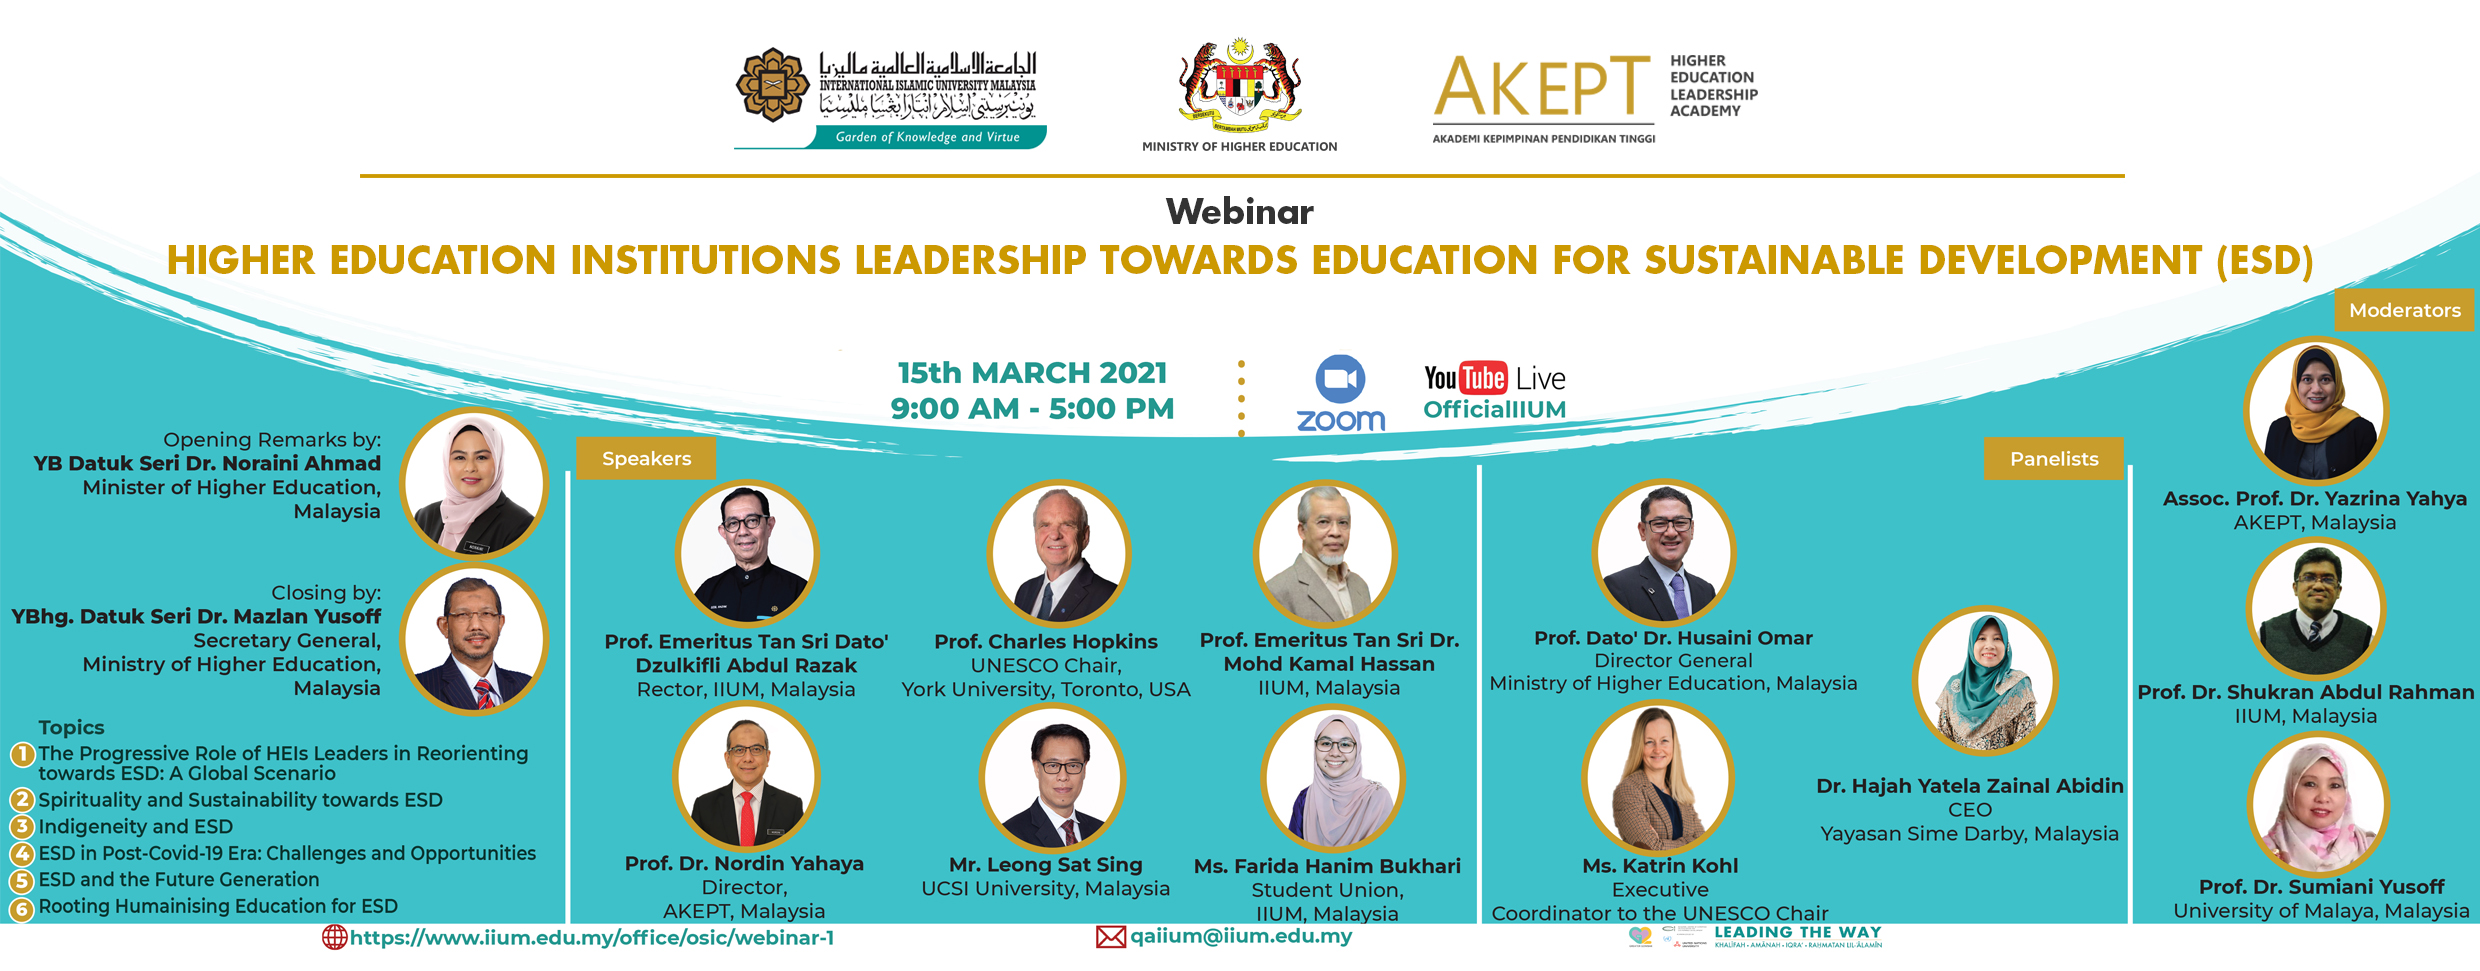 [Information Sharing] AKEPT Global Series Webinar Invitation